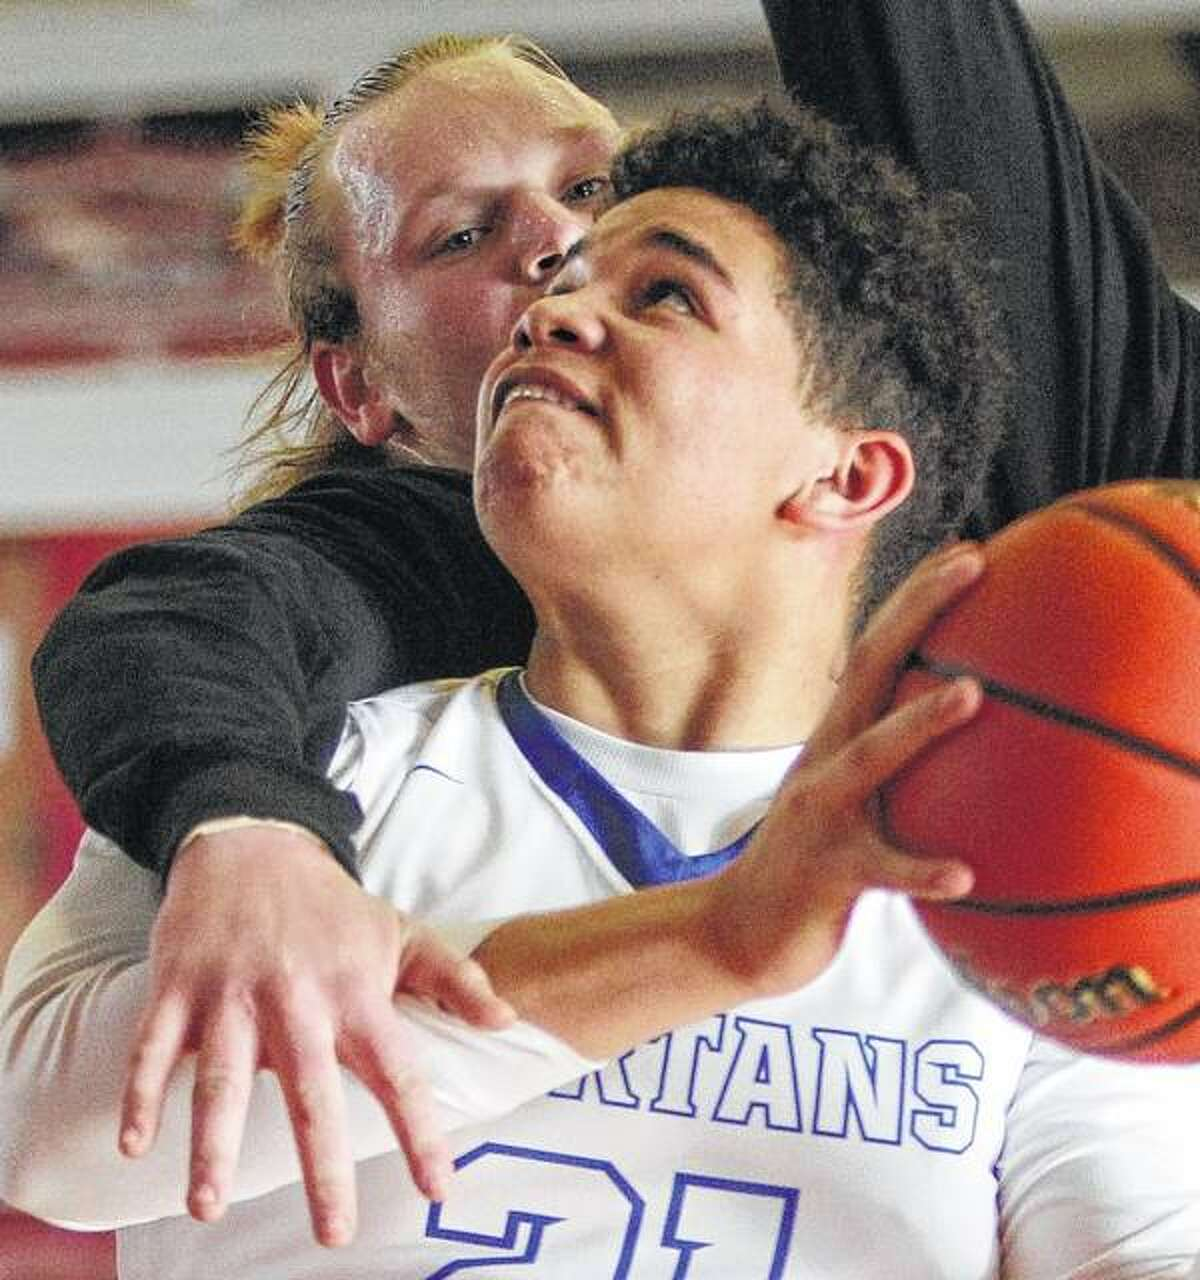 North Greene's Zion Thomas (front) is fouled during a game against Edinburg on Saturday in the Jacksonville Prep Showcase at The Jacksonville Bowl.